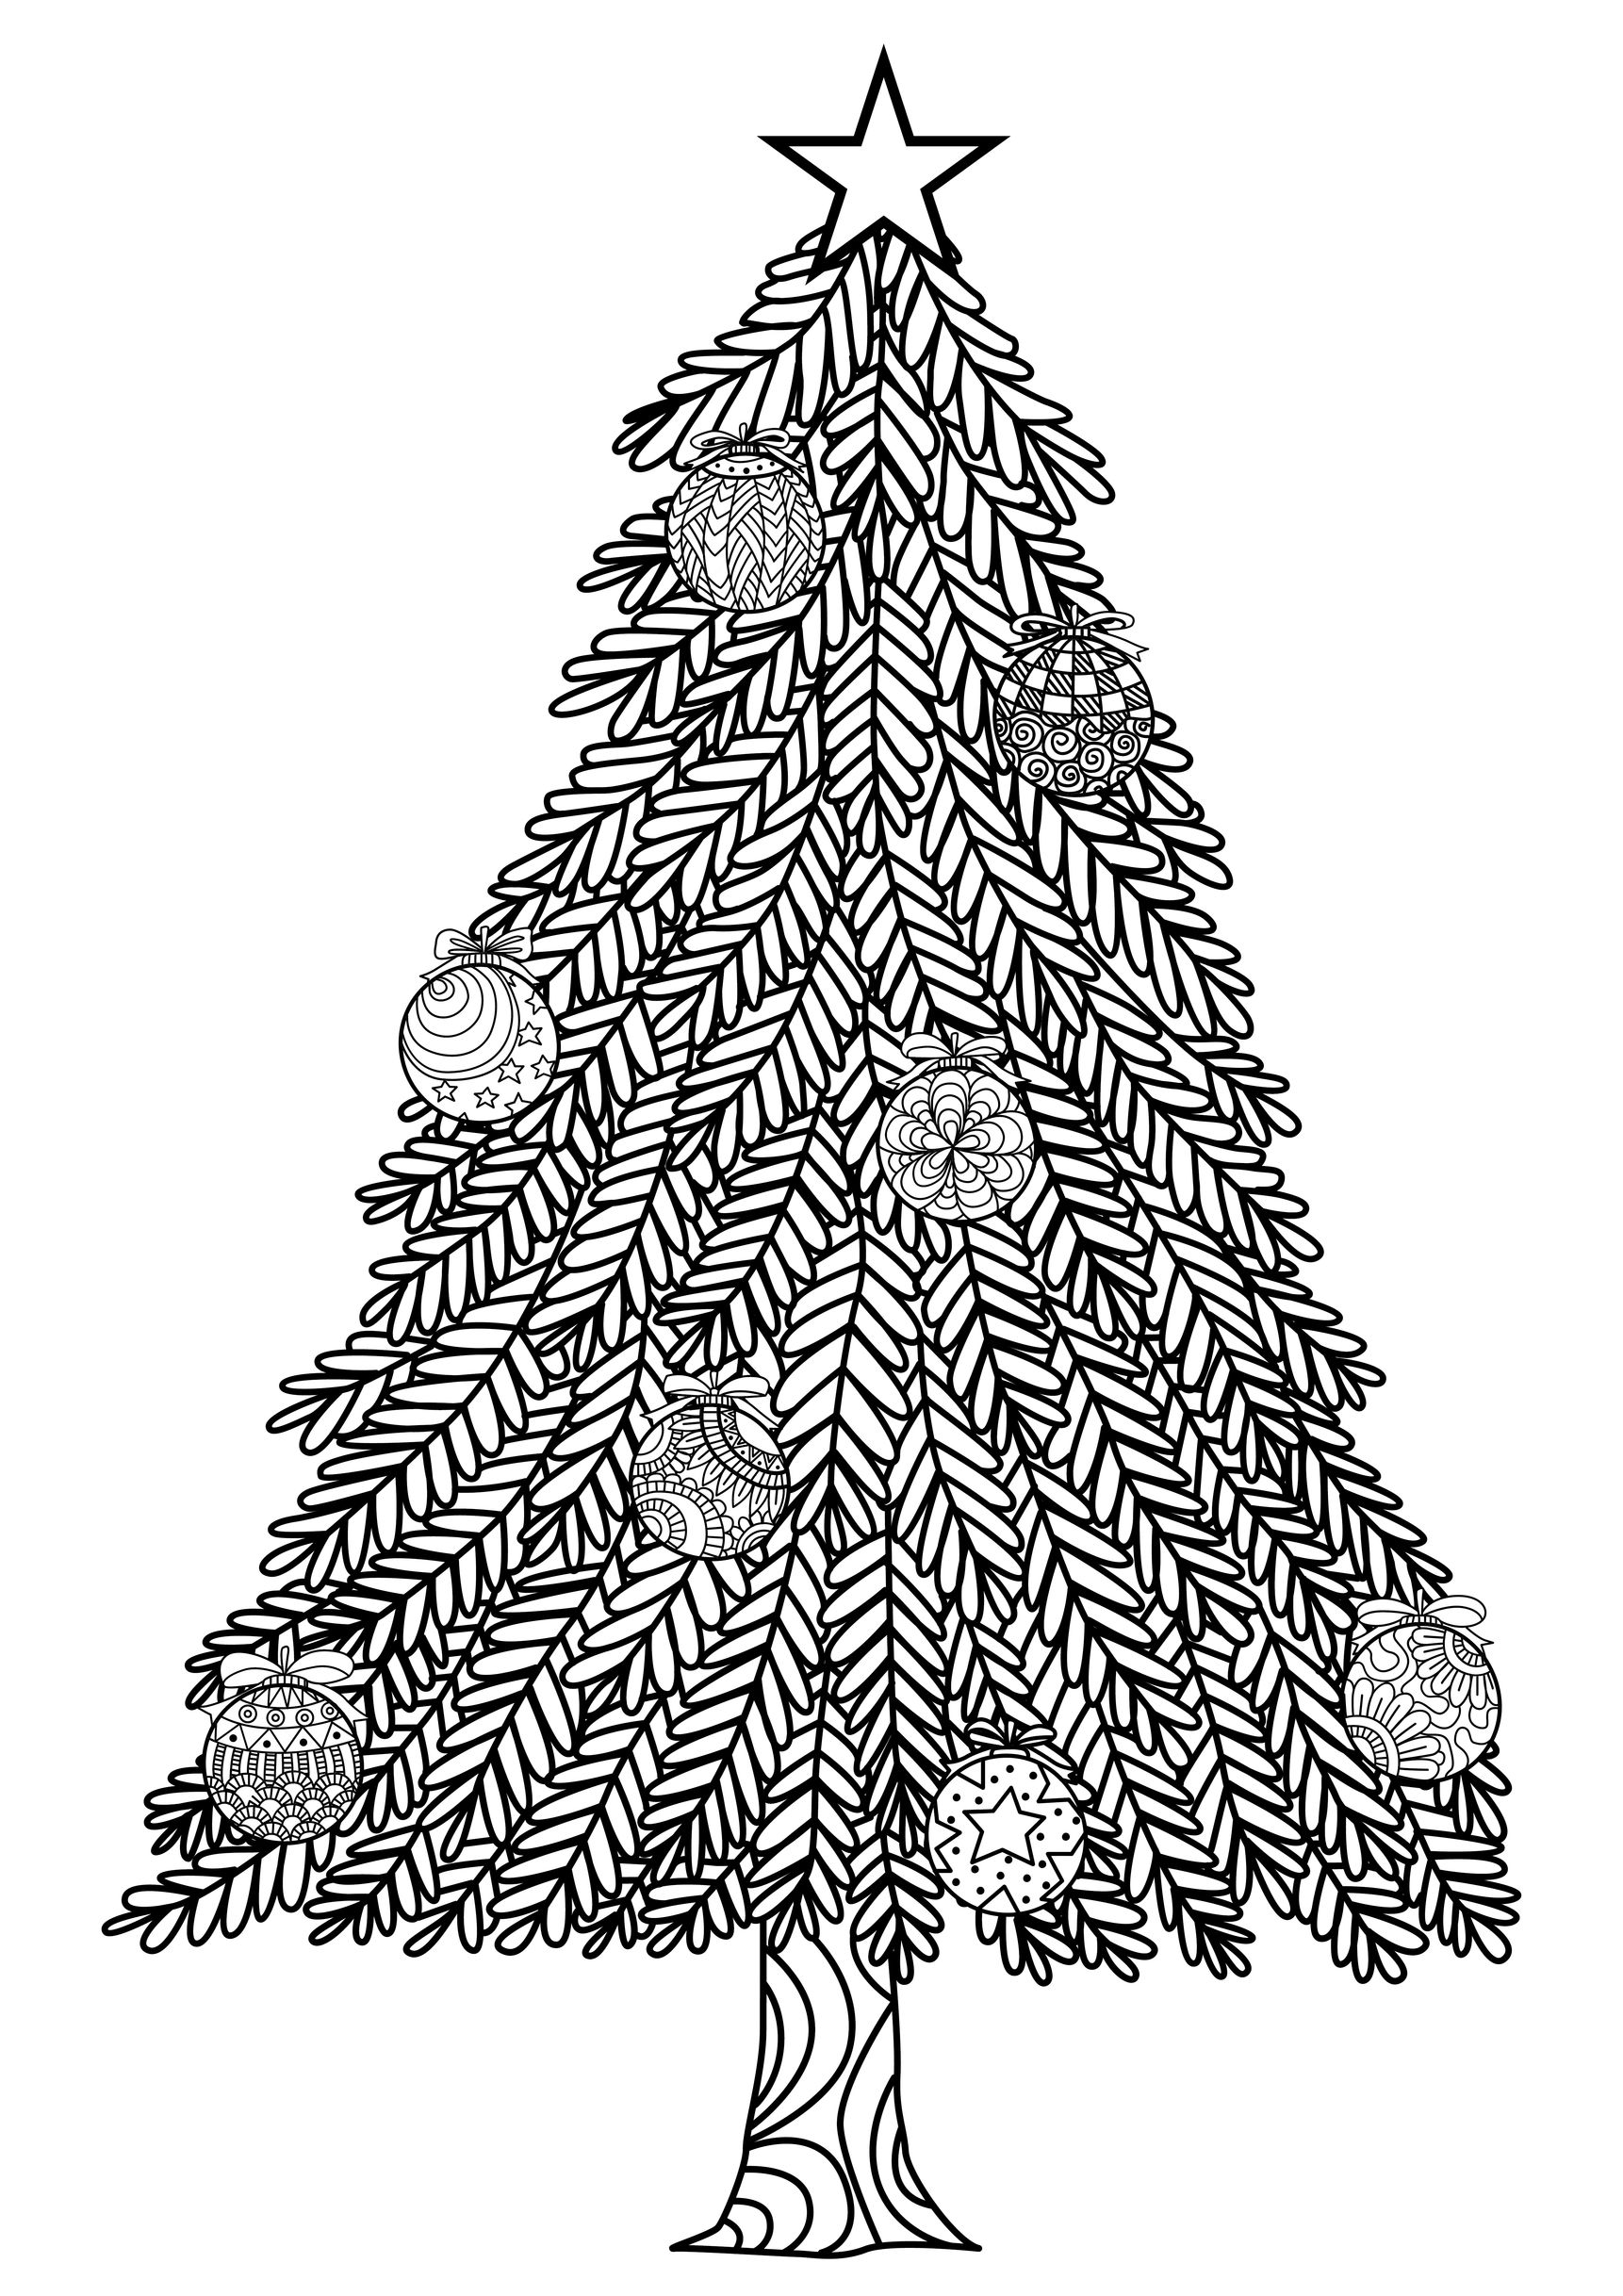 Coloring Page Christmas Tree With Ball Ornaments Zentangle Style Balls And A Big Star In The Top